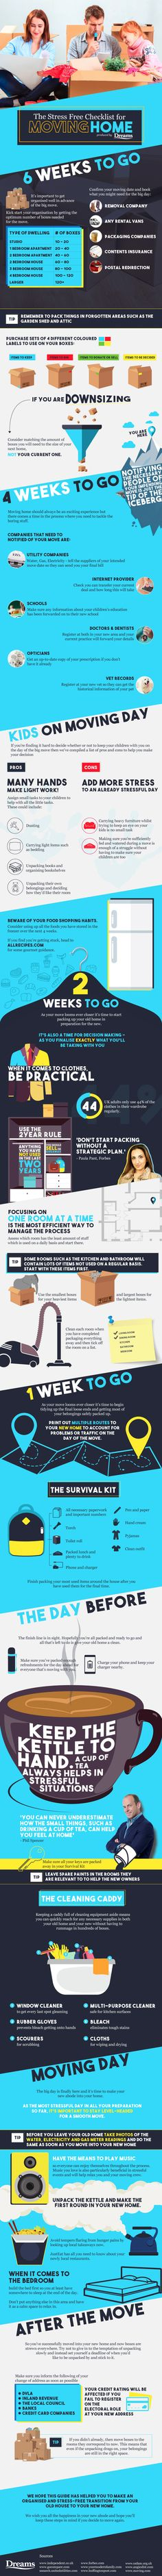 The Stress-Free Checklist For Moving Home #Infographic #Travel